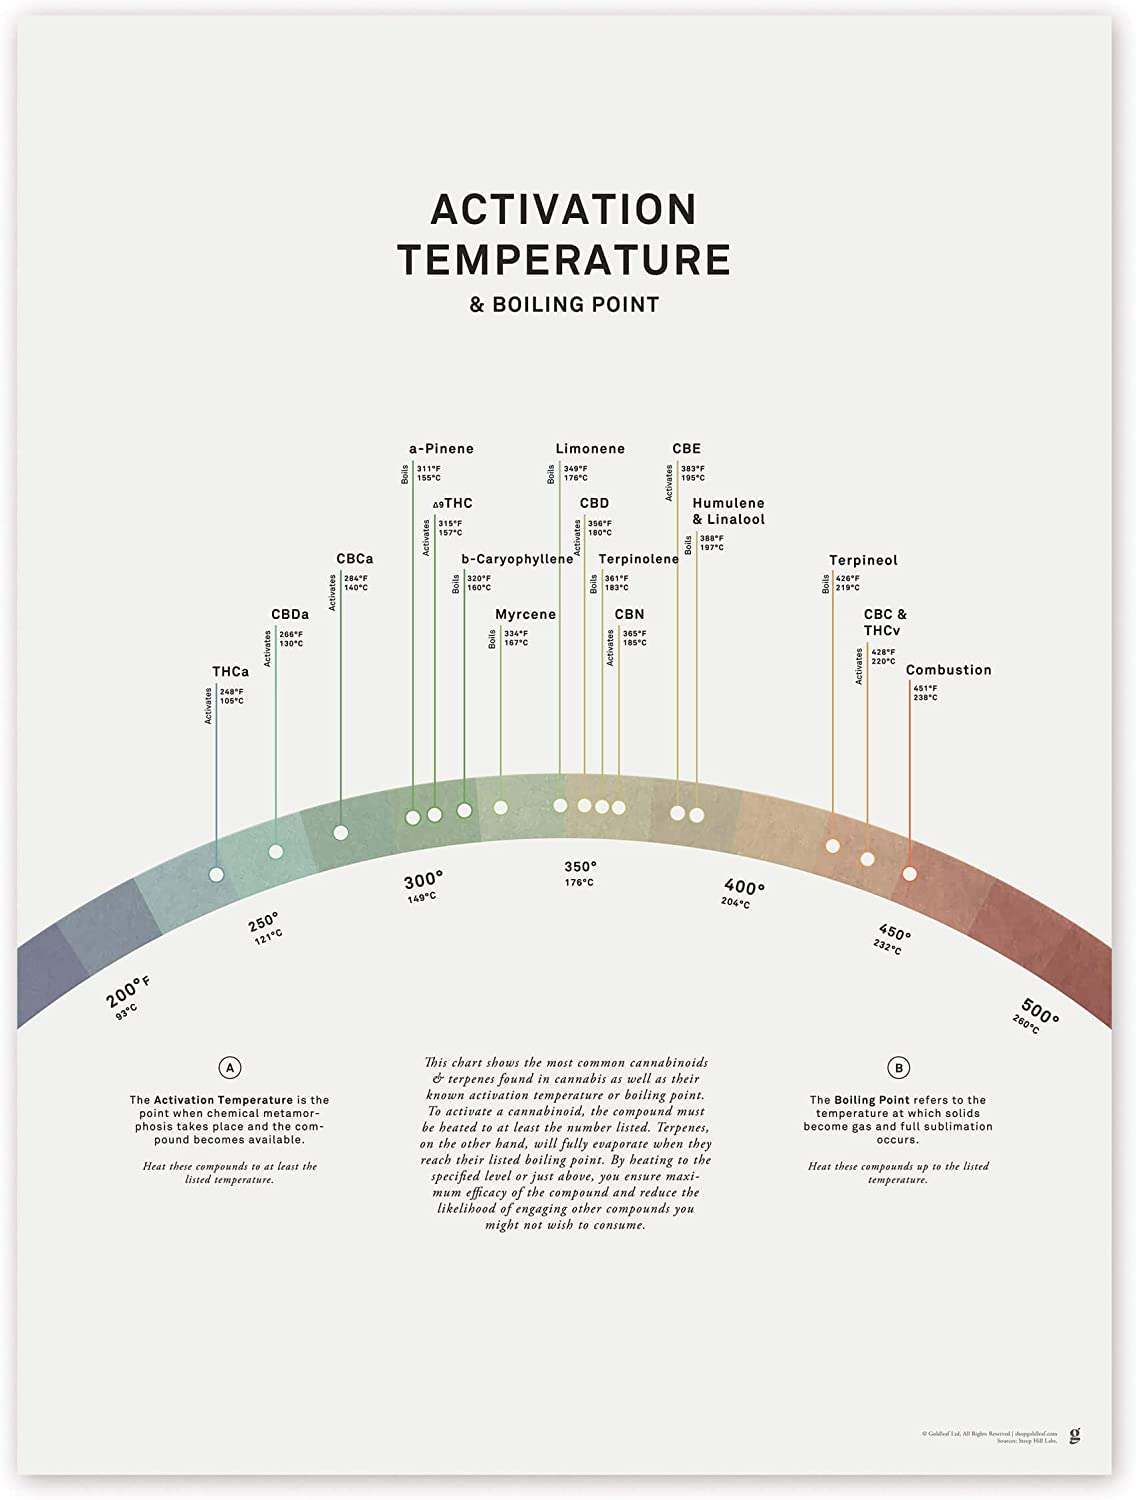 Activation temperature & Boiling point chart